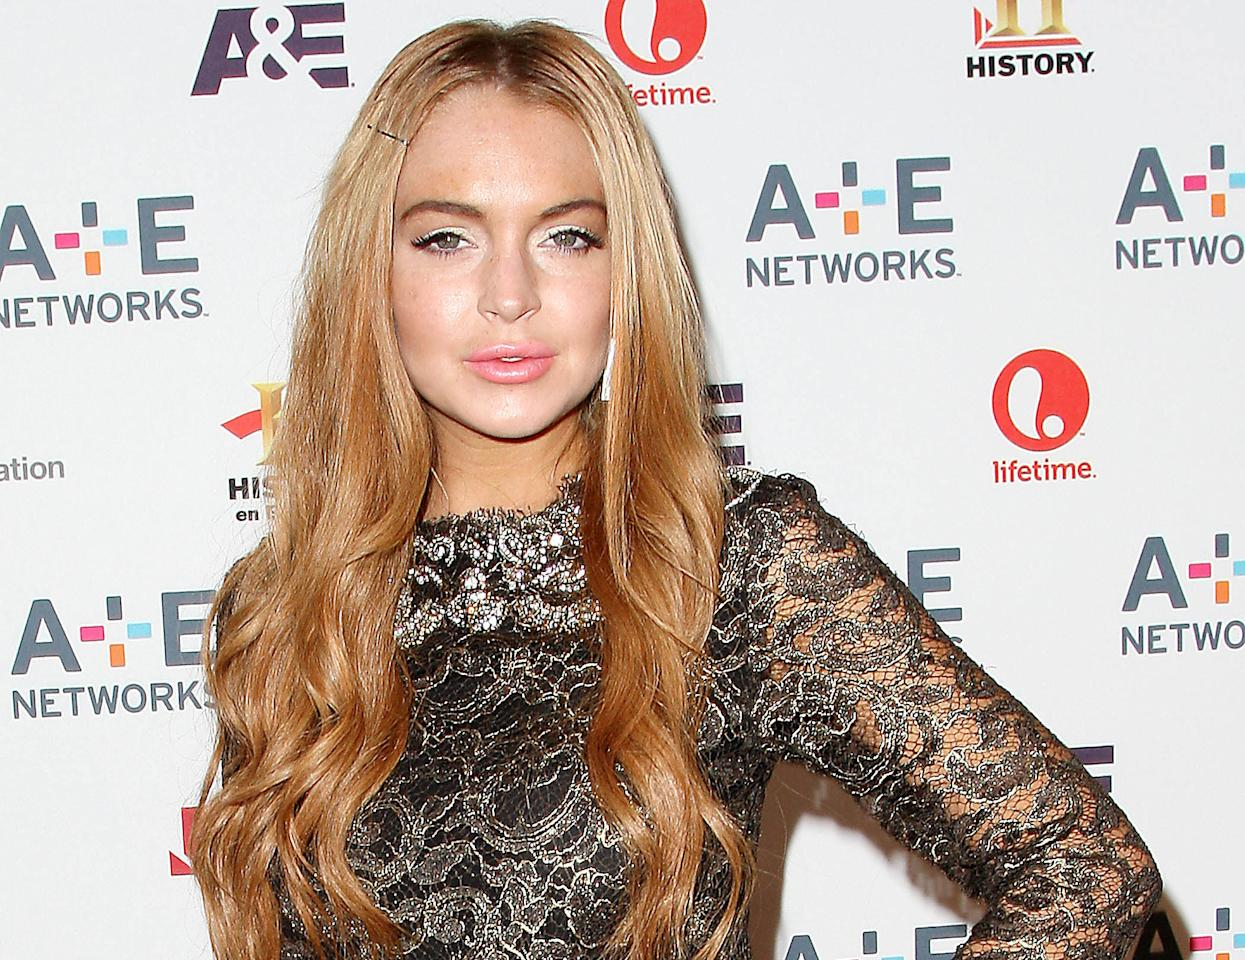 FILE - This May 9, 2012 photo shows actress Lindsay Lohan at the A&E Networks 2012 Upfront at Lincoln Center in New York. Prosecutors on Tuesday, Aug. 28, 2012 rejected a potential burglary case that police presented against Lohan, who was at a home earlier this month where a burglary was reported. Prosecutors cited insufficient evidence. (AP Photo/Starpix, Kristina Bumphrey, file)